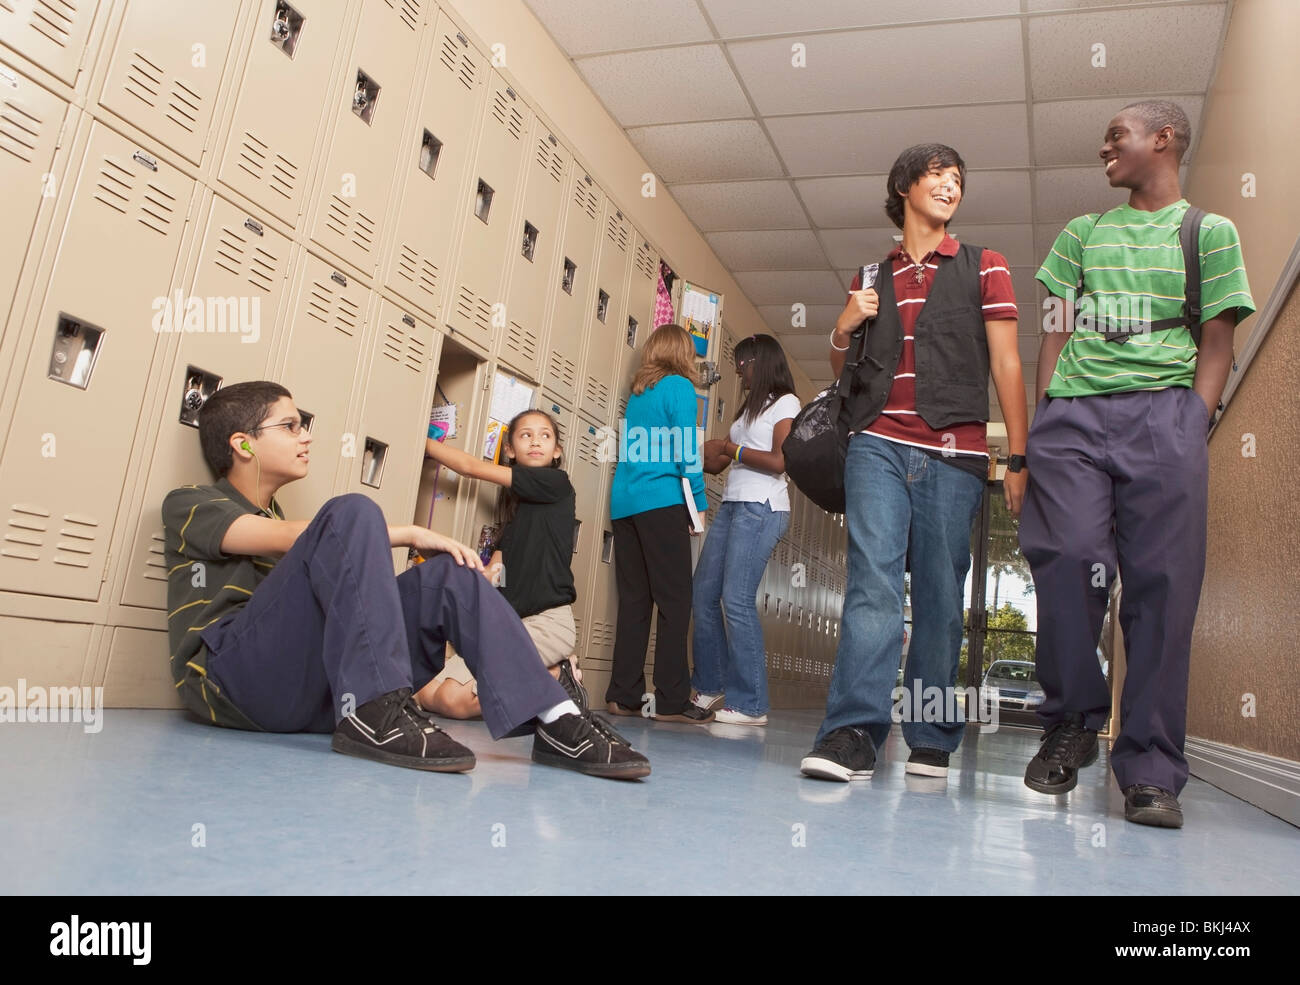 Fort Lauderdale, Florida, United States Of America; Students In The School Hallway - Stock Image